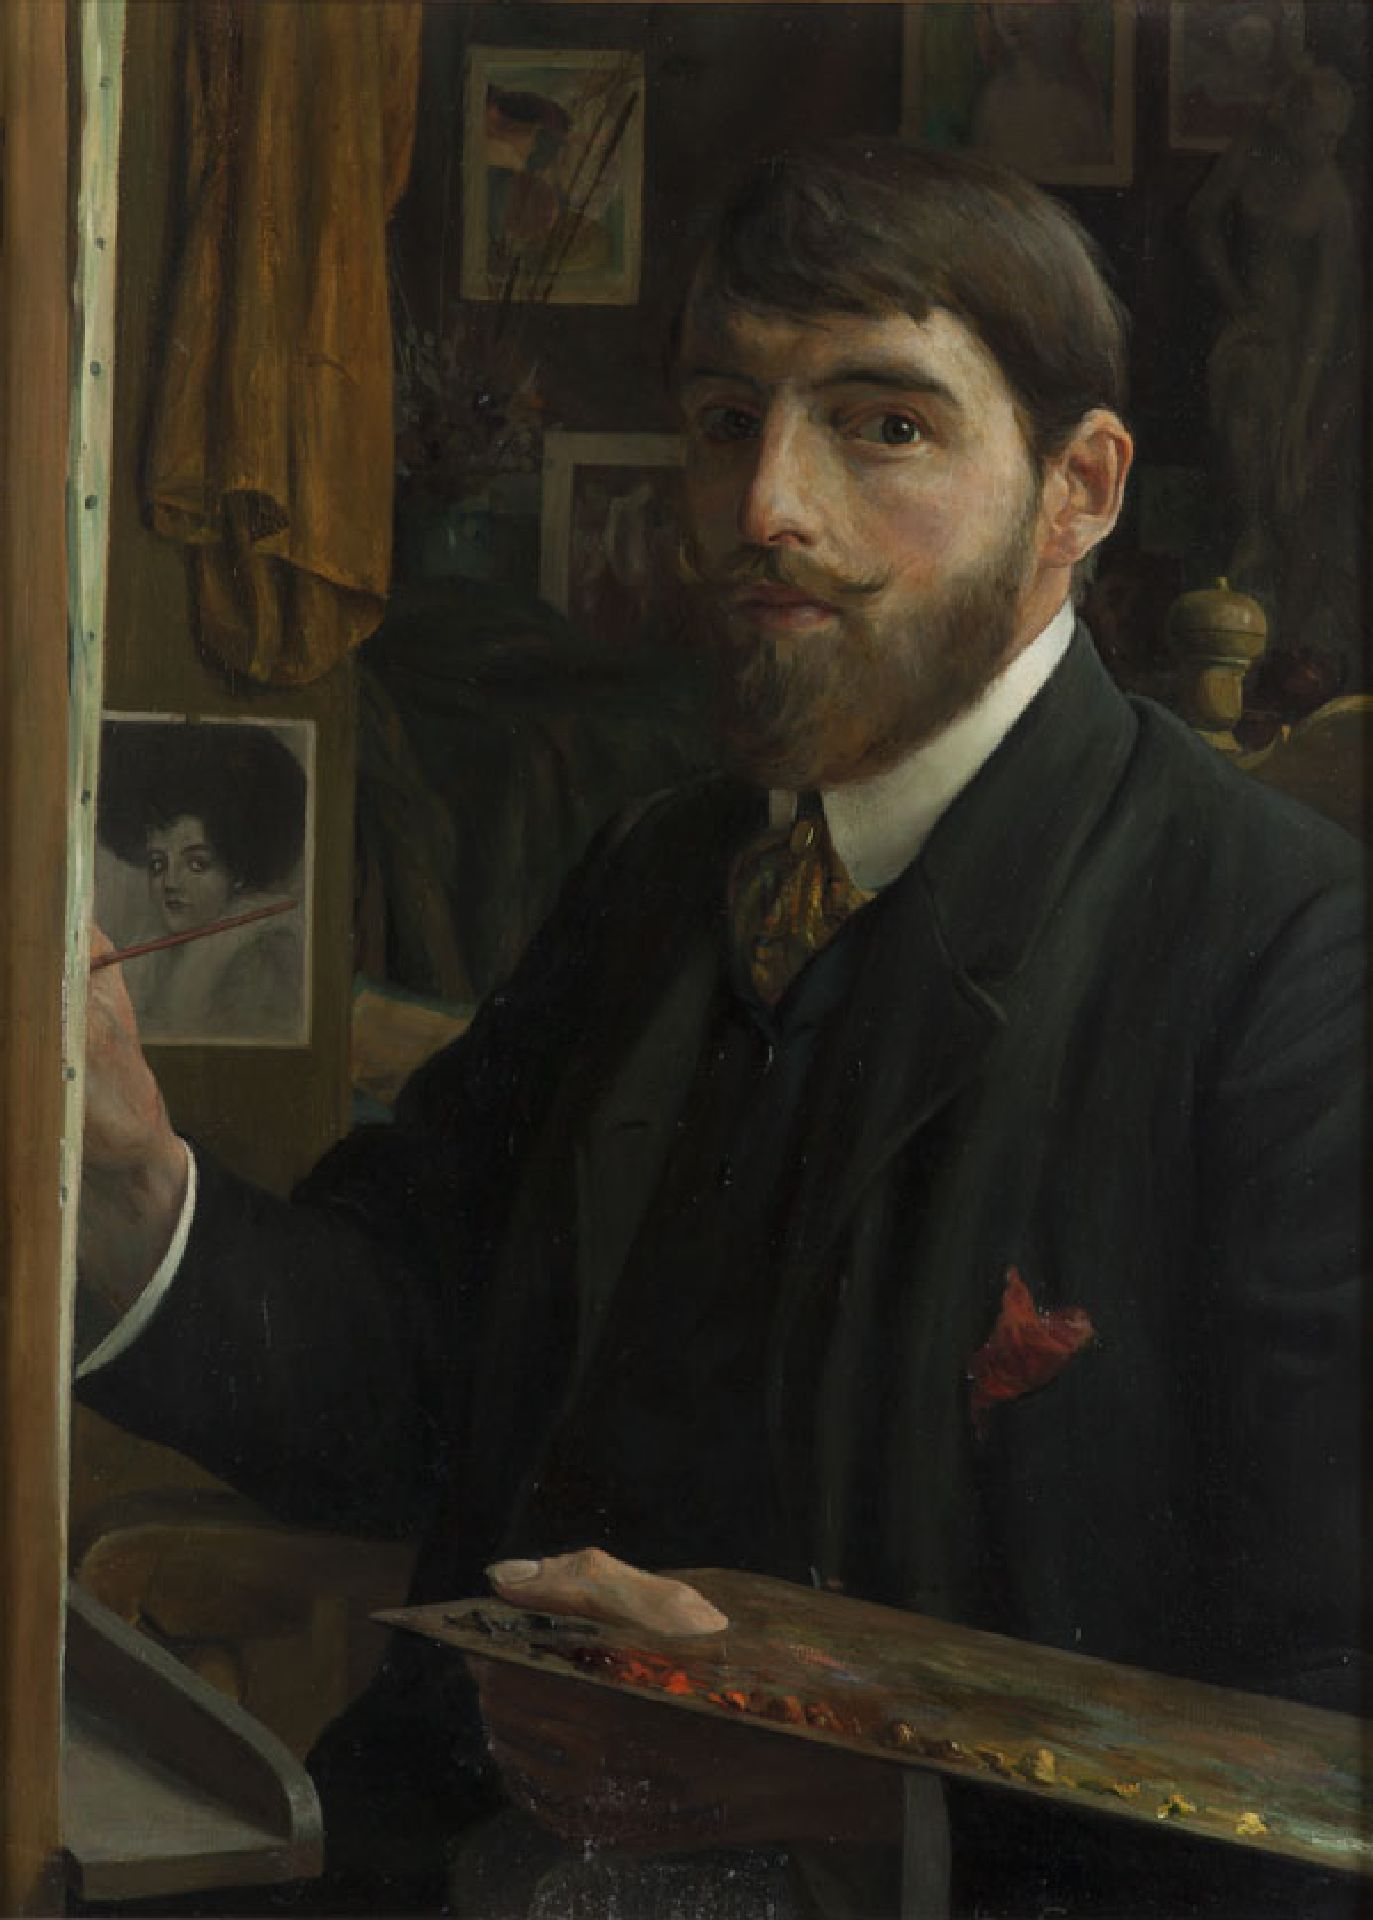 Portrait of artist, painter, watercolourist and draughtsman Leendert 'Leo' Gestel